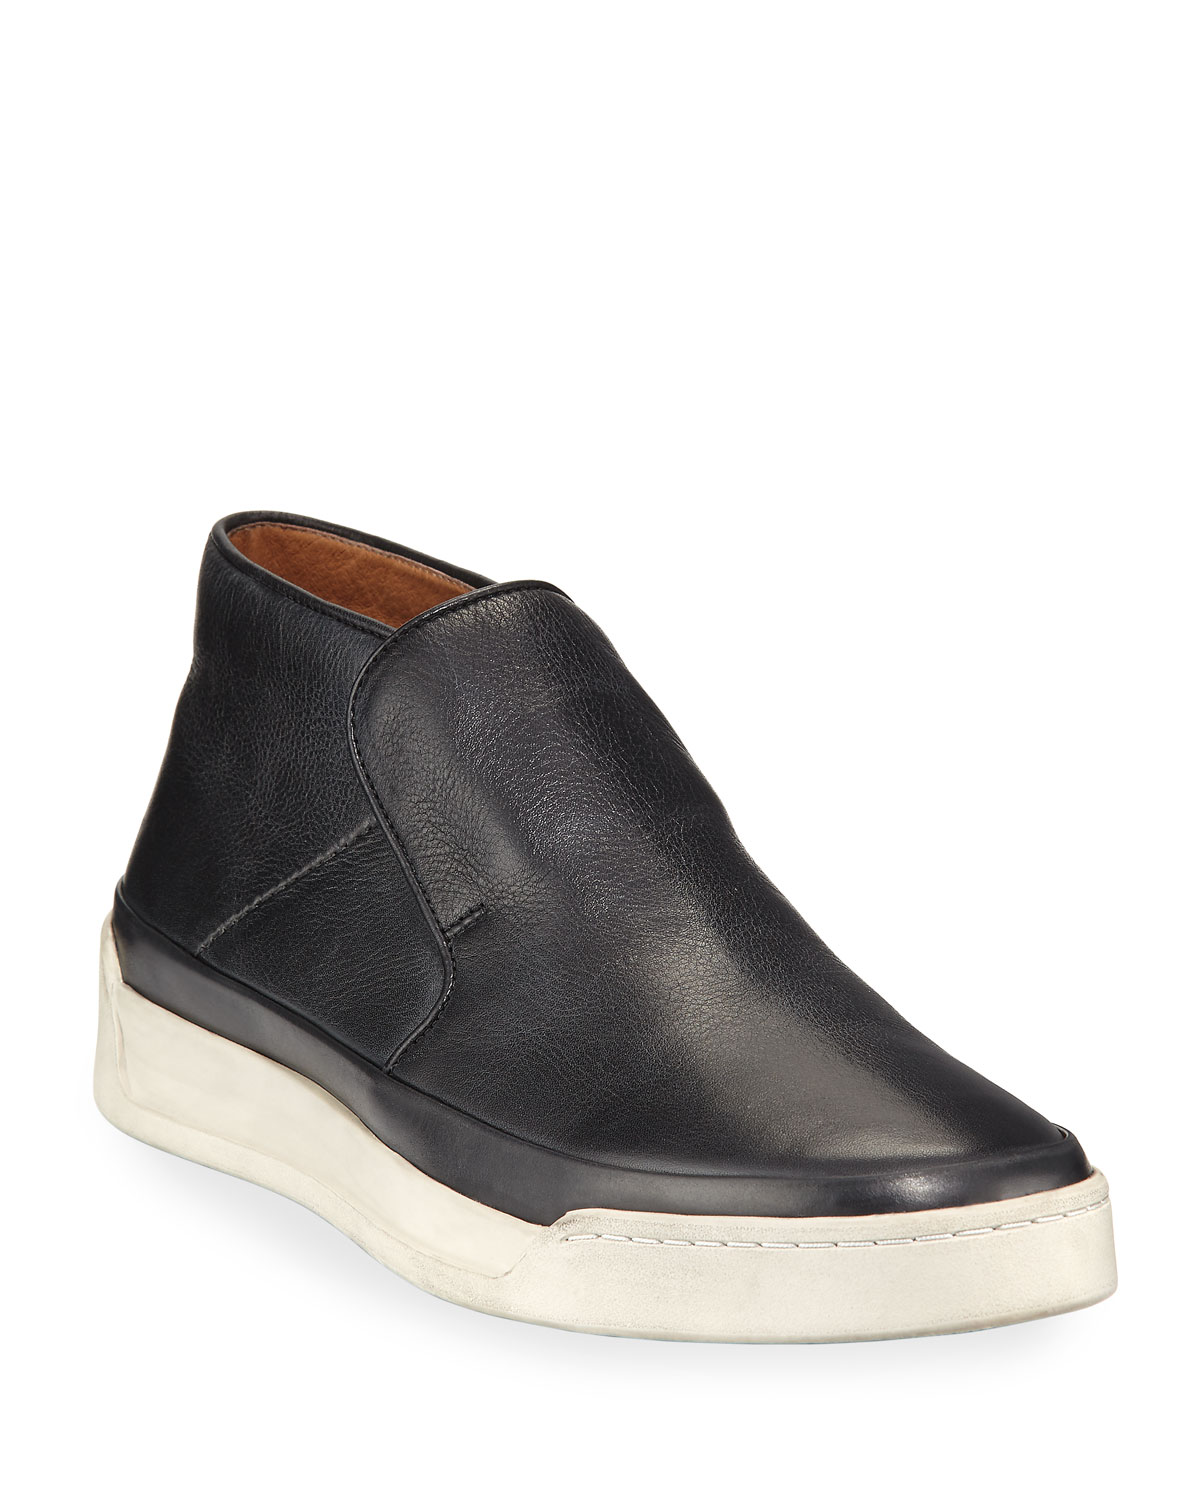 ad814a6bb8d John Varvatos Men s Remy Leather Mid-Top Slip-On Sneakers